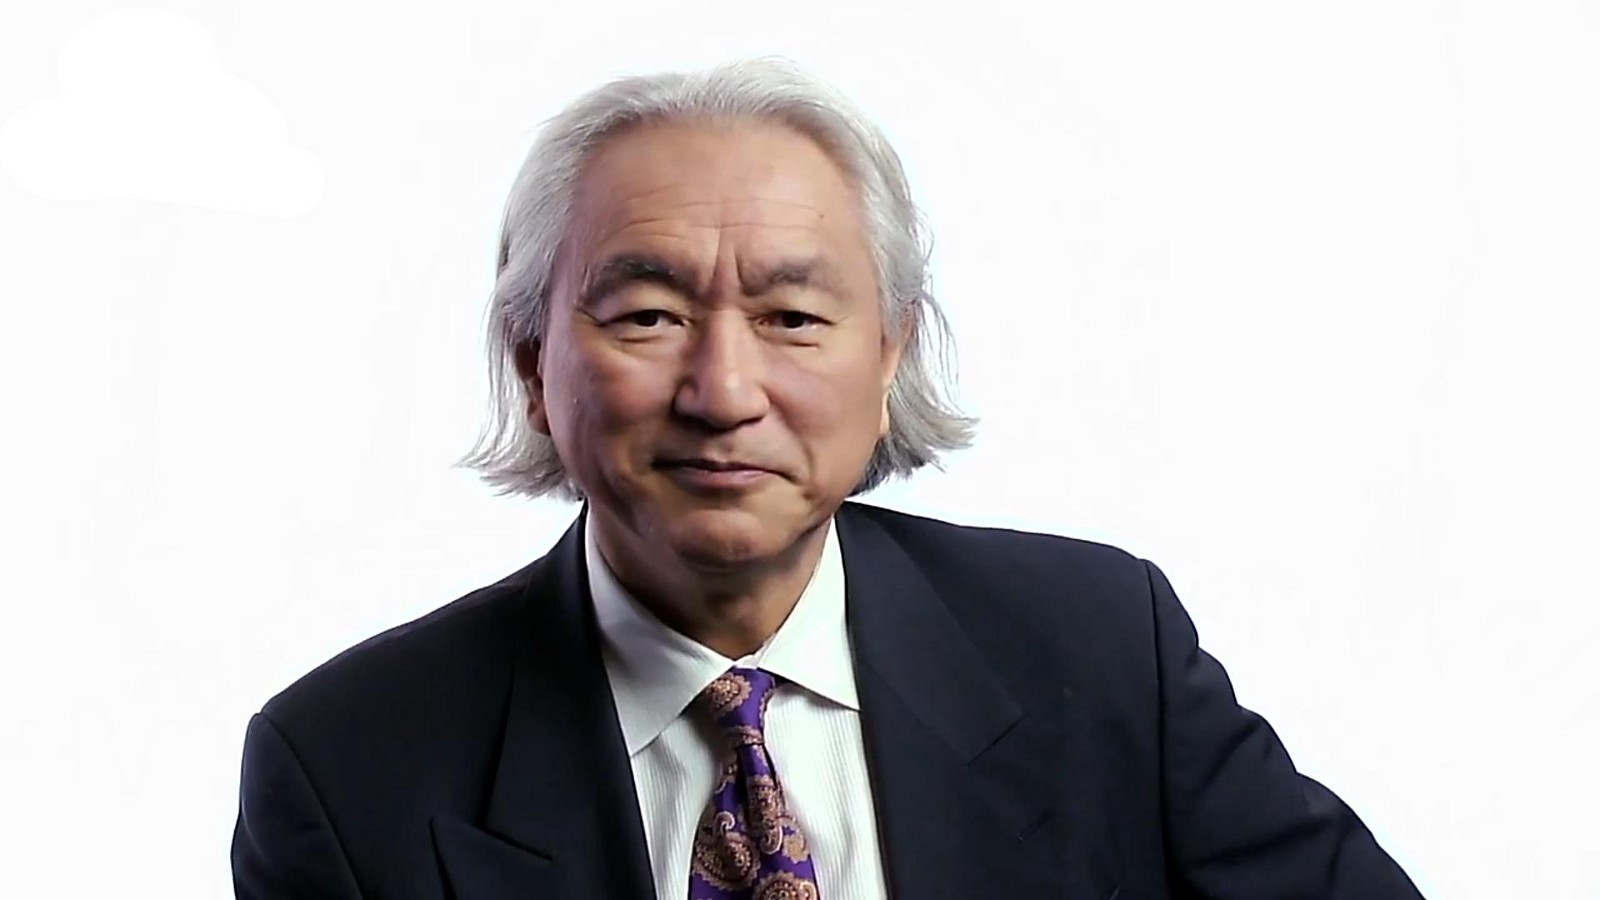 The 72-year old son of father (?) and mother(?) Michio Kaku in 2019 photo. Michio Kaku earned a  million dollar salary - leaving the net worth at  million in 2019